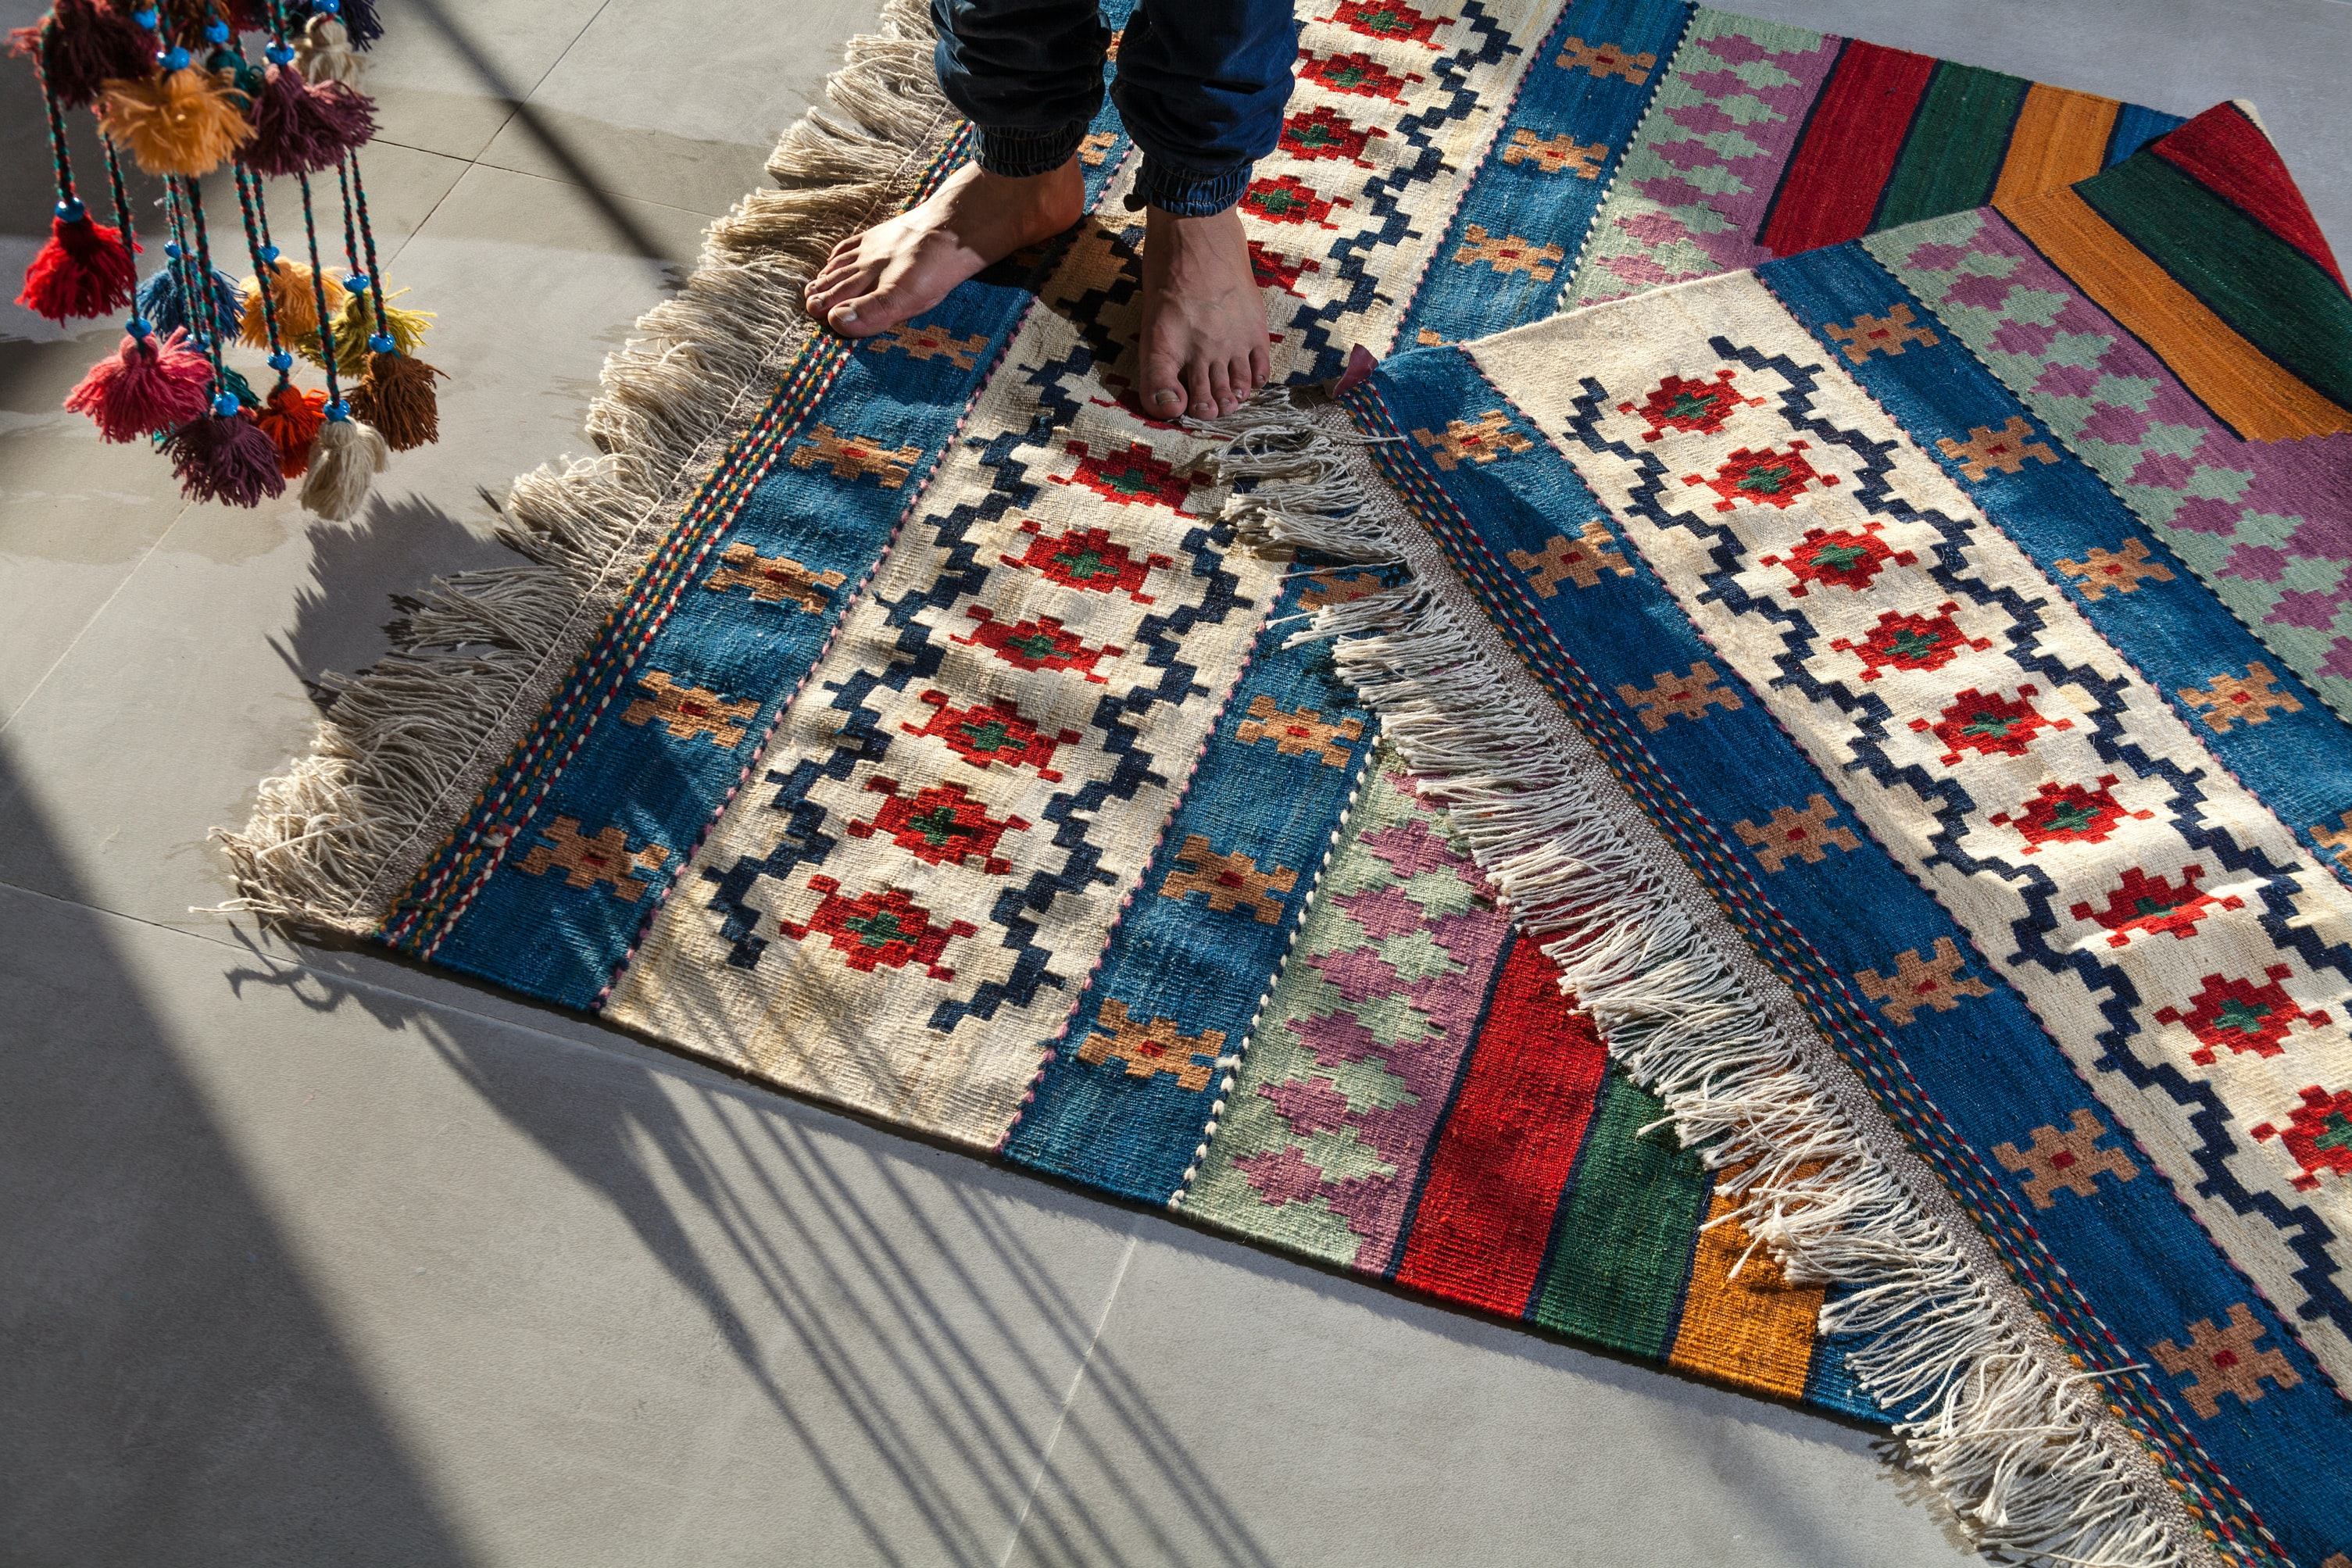 use rugs as noise canceling for neighbors below